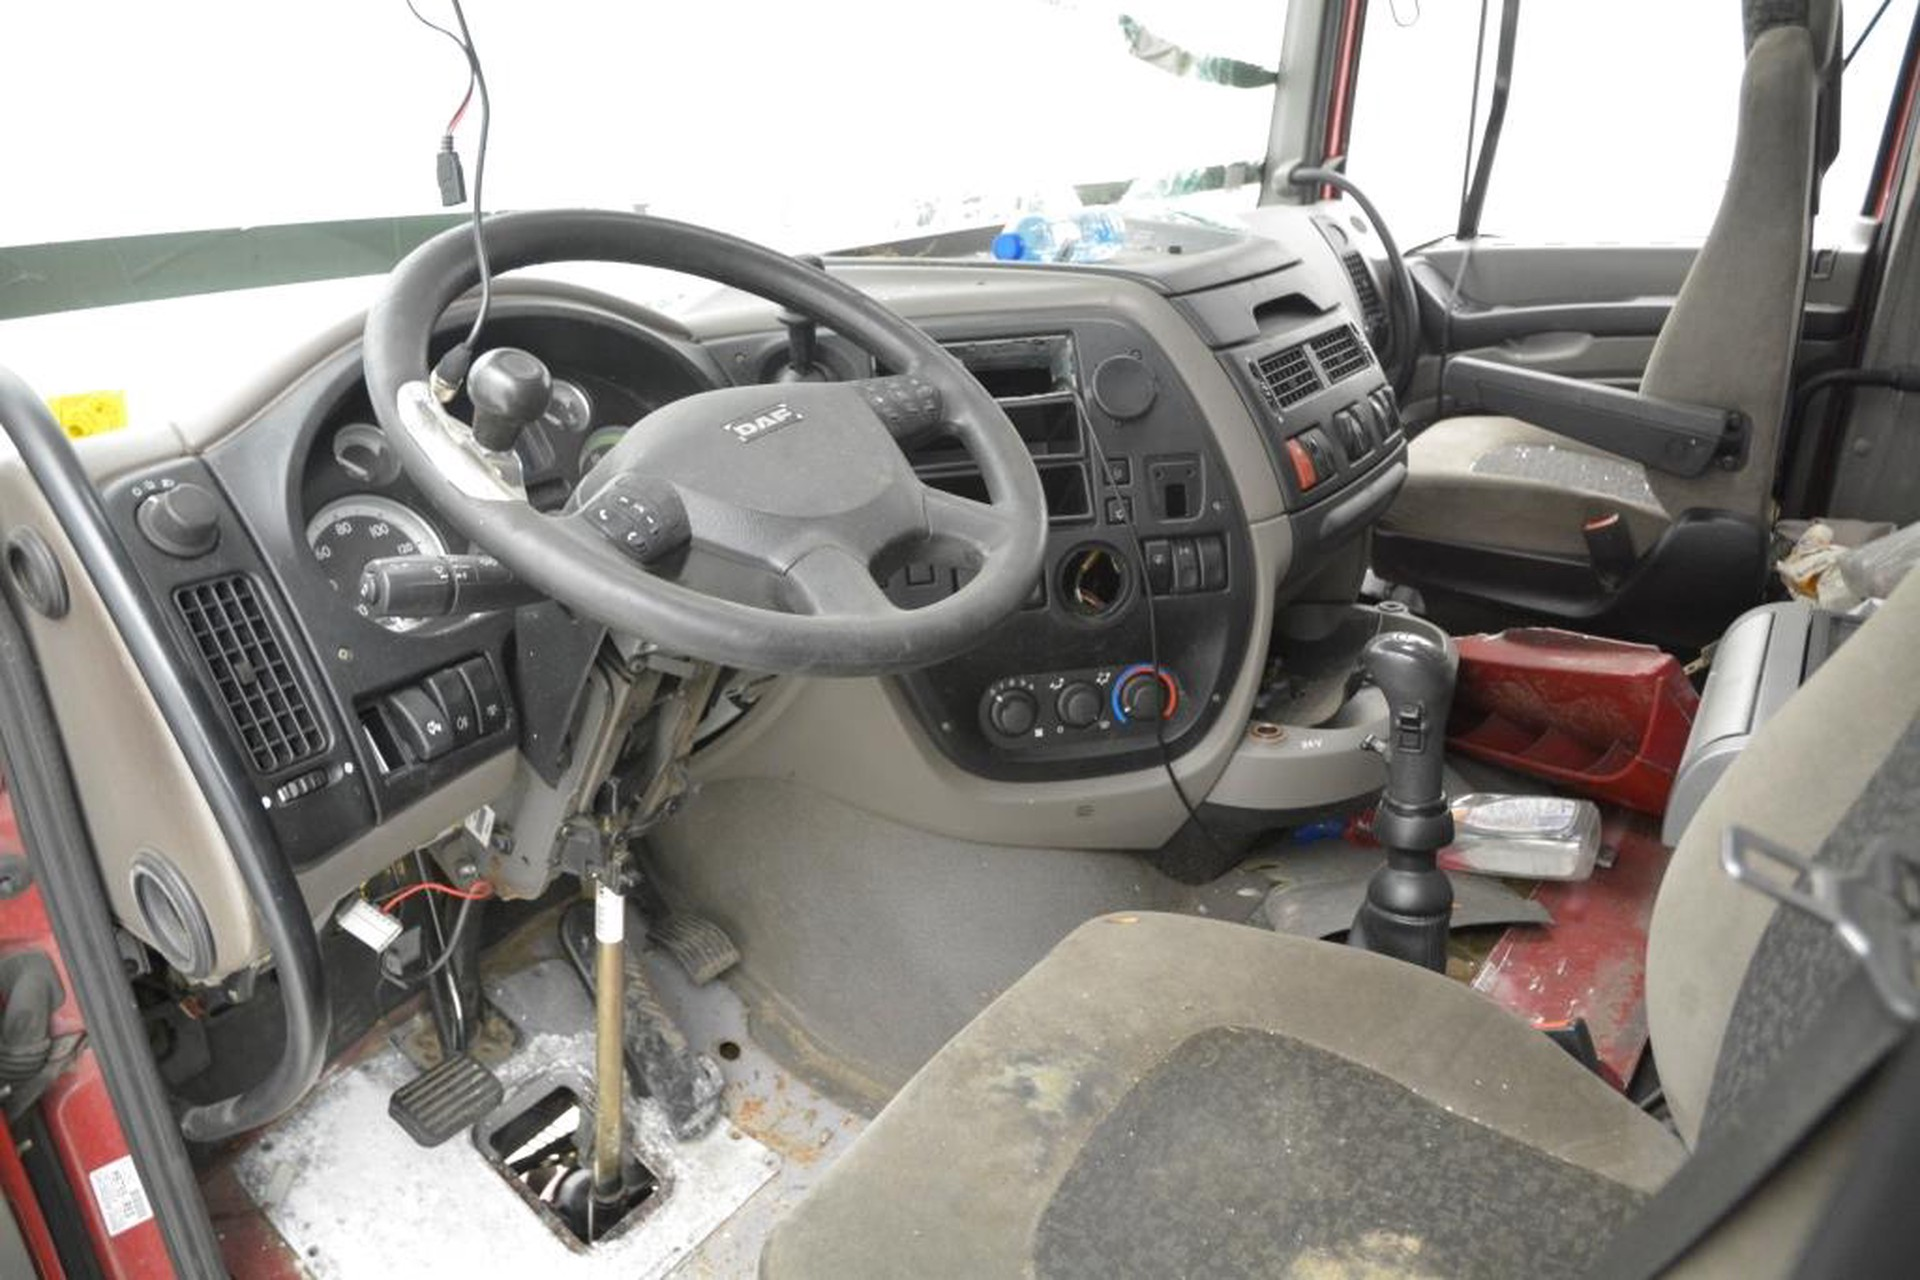 DAF XF105.410 Super Space Cab - Euro 5